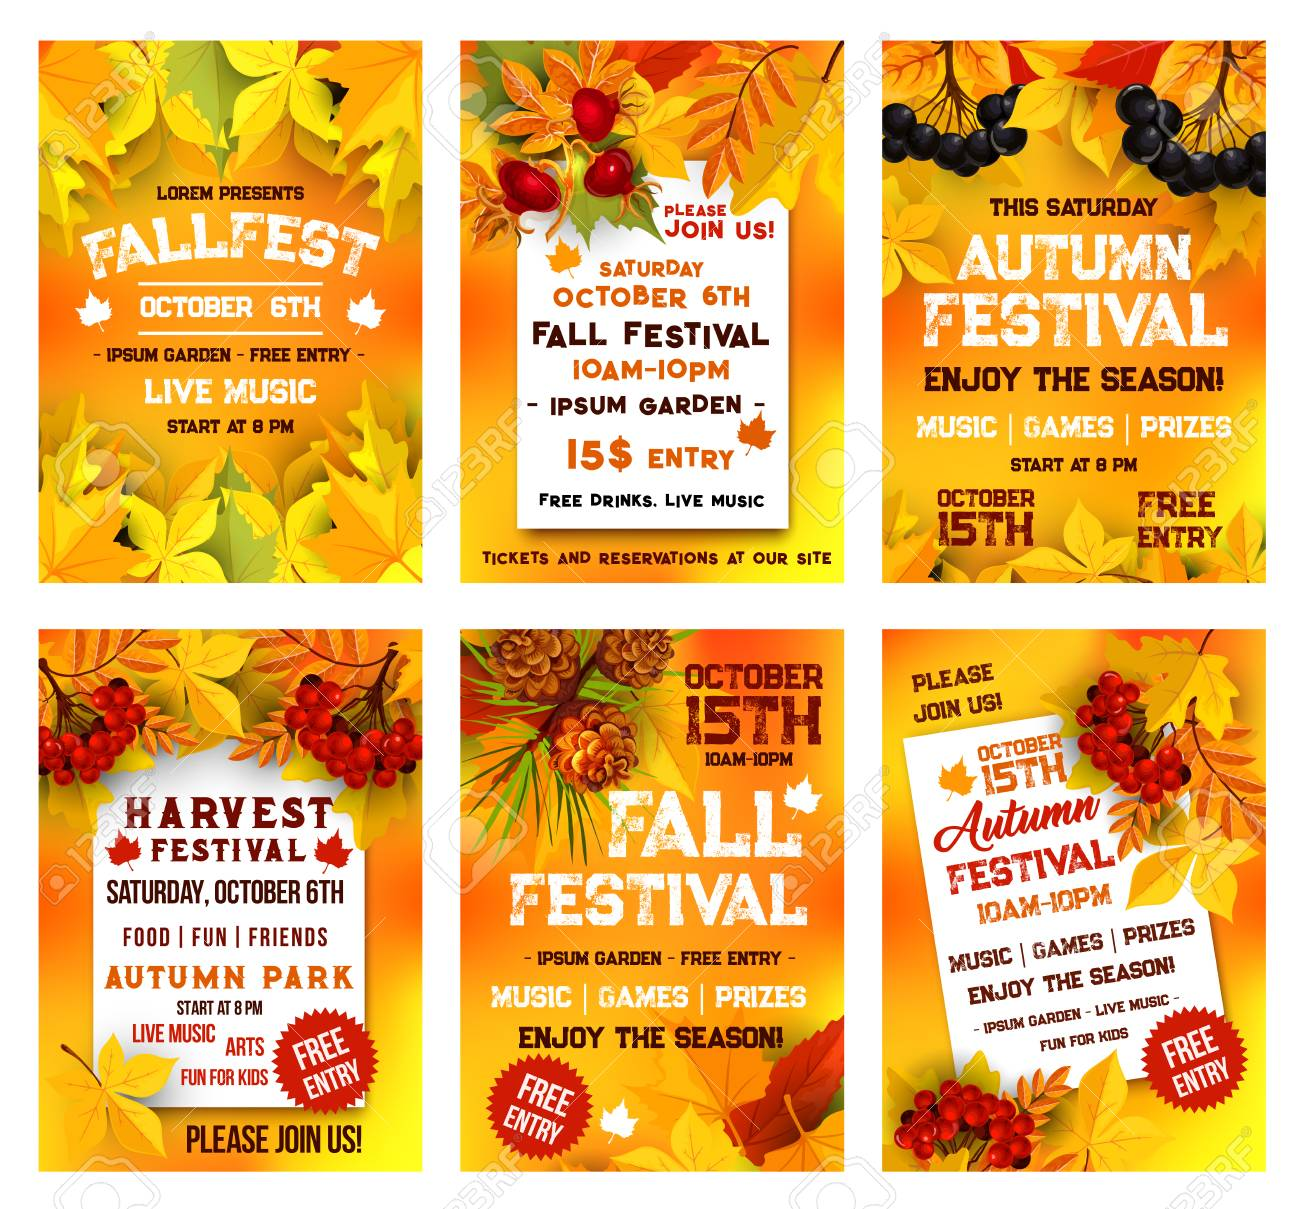 Autumn festival poster template set. Fall season harvest celebration banner, adorned by yellow maple leaf, orange chestnut foliage, rowan and briar berry, pine cone for autumn party invitation design - 114709885